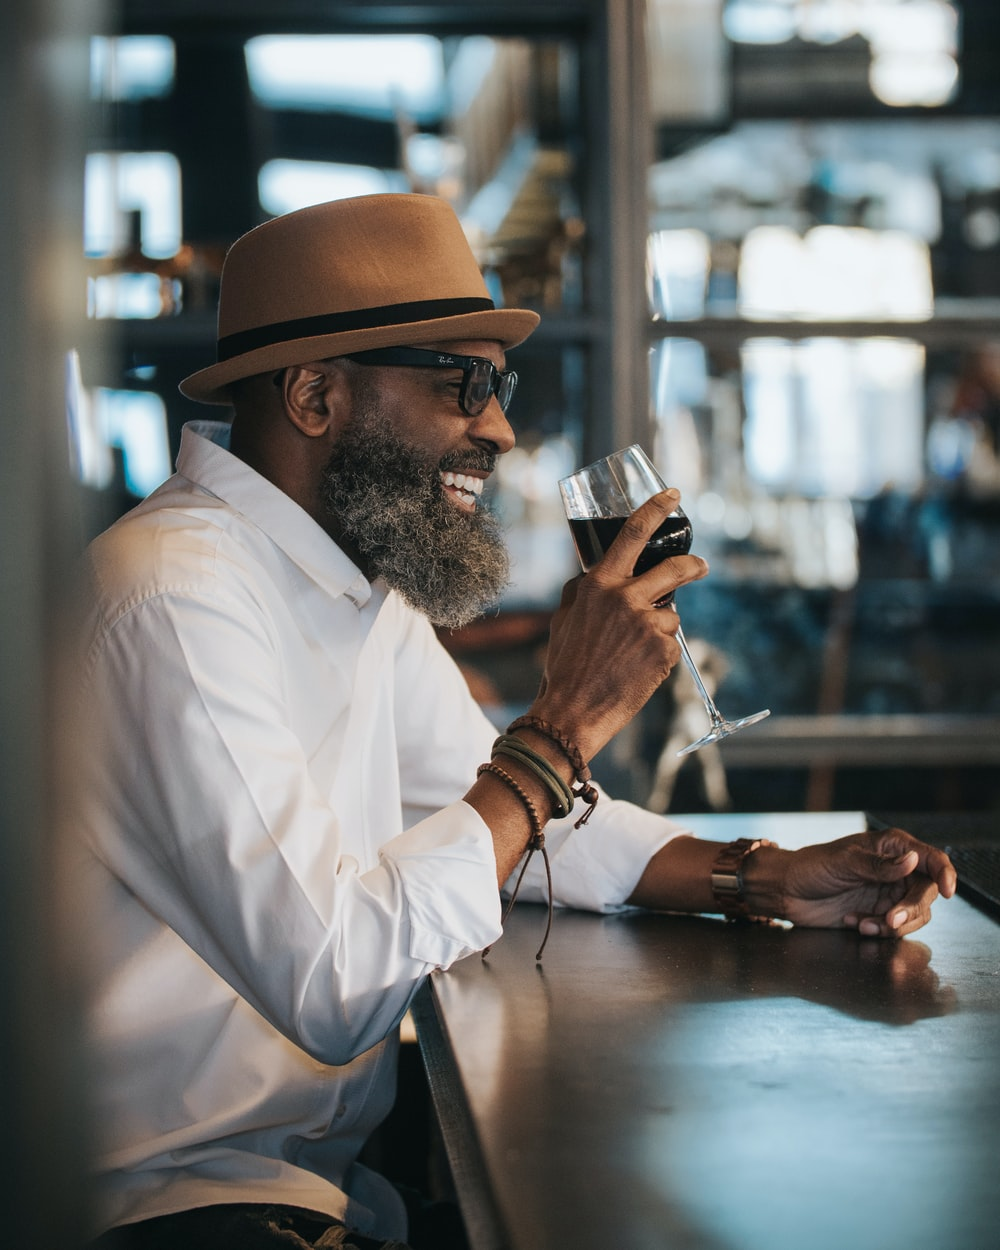 man in white dress shirt and brown hat holding clear drinking glass